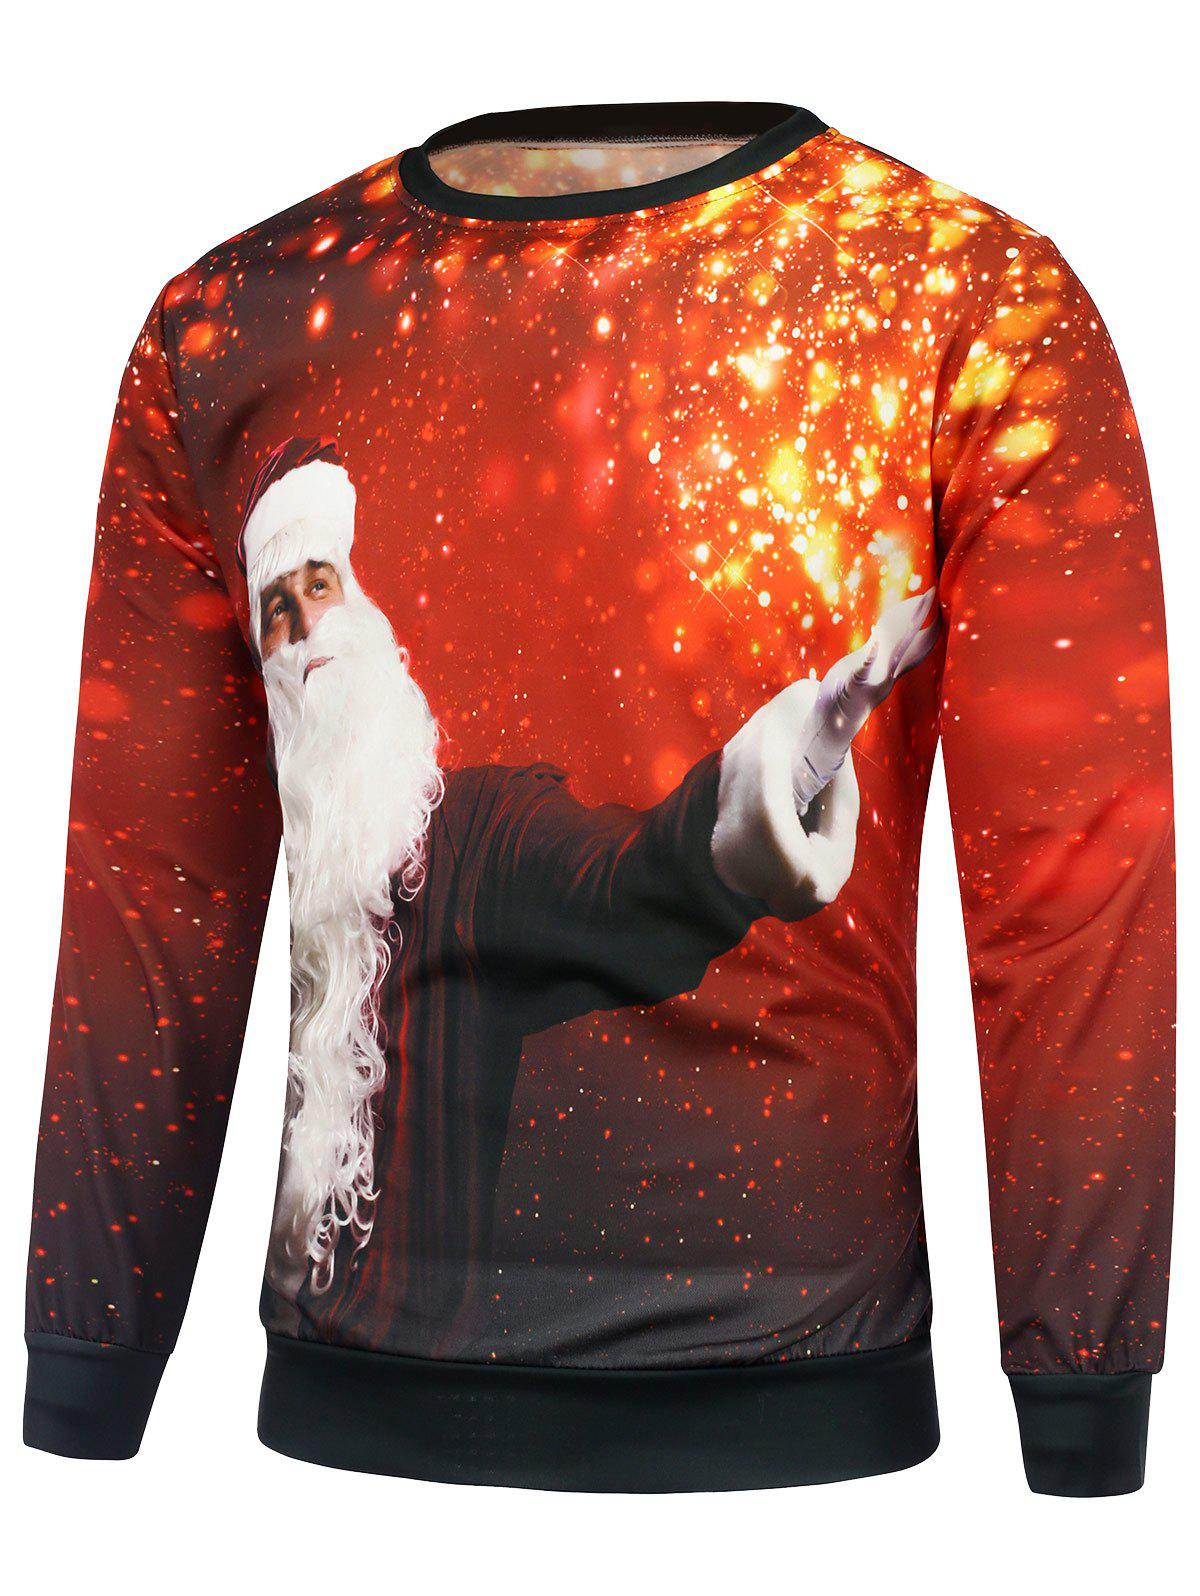 Christmas Santa Claus Printing SweatshirtMEN<br><br>Size: 3XL; Color: RED; Material: Cotton,Polyester; Shirt Length: Regular; Sleeve Length: Full; Style: Casual; Weight: 0.450kg; Package Contents: 1 x Sweatshirt;